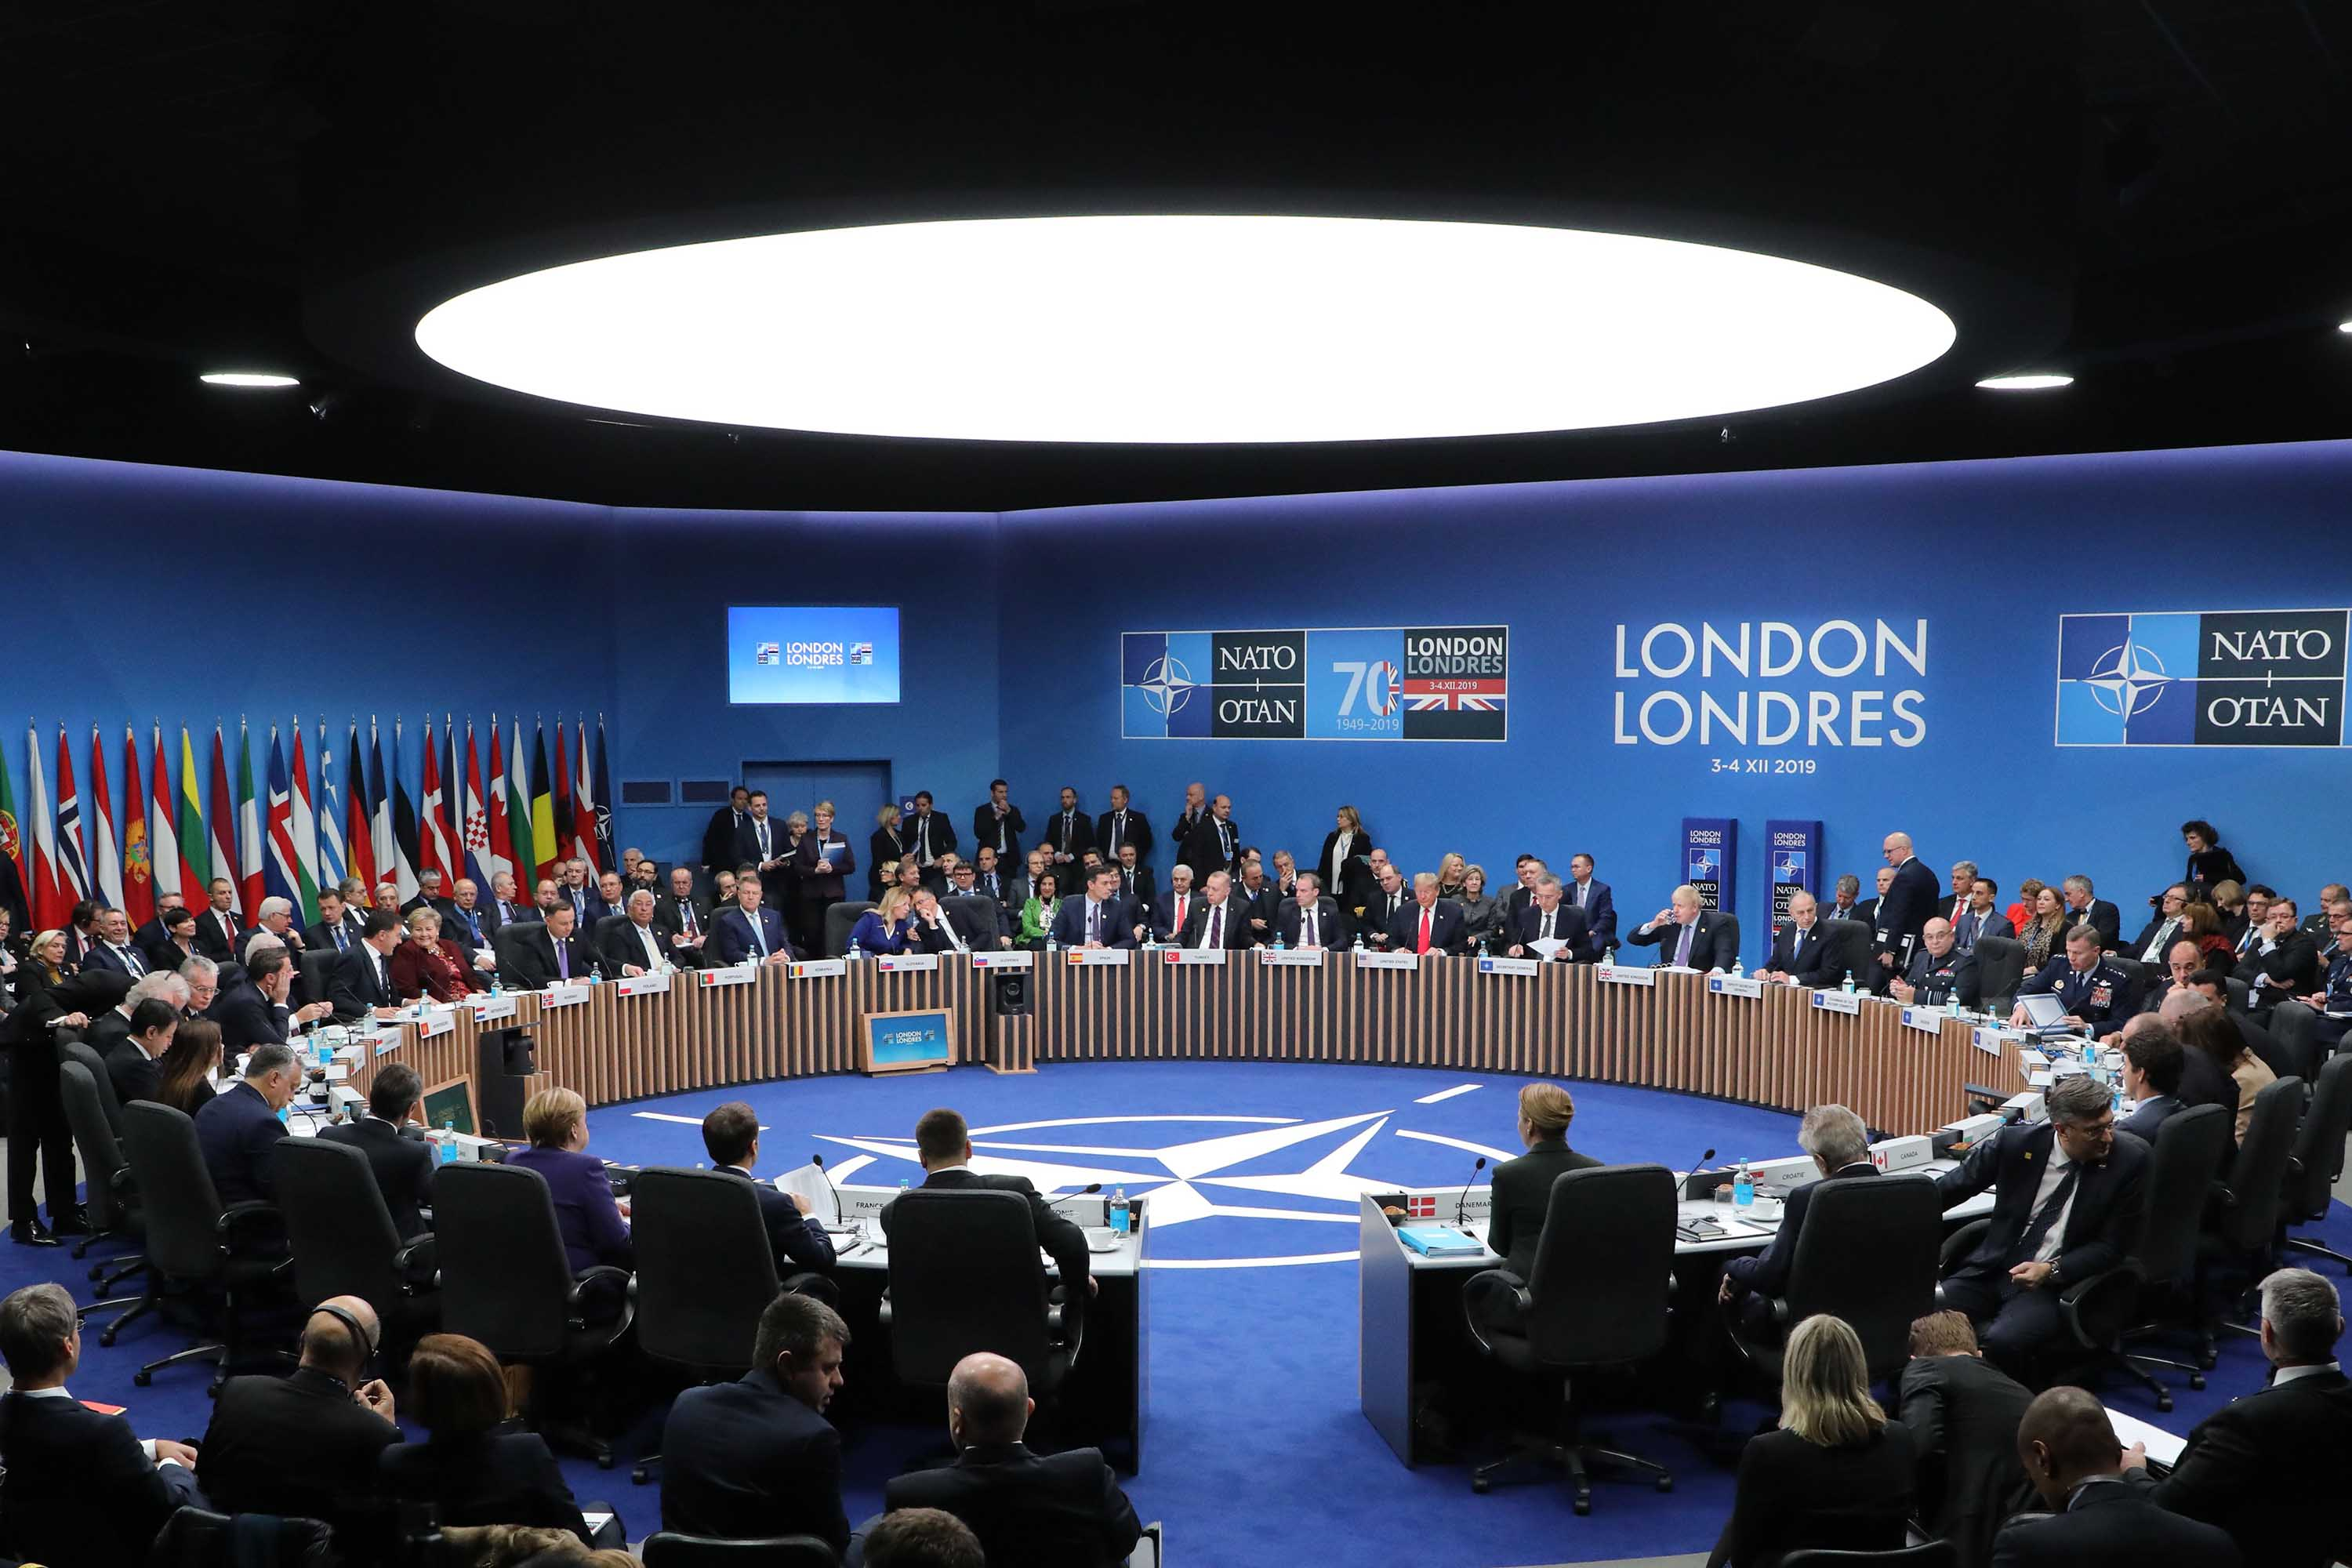 NATO heads of state attend the plenary session of the NATO summit on Wednesday. Photo: Ludovic Marin/AFP via Getty Images